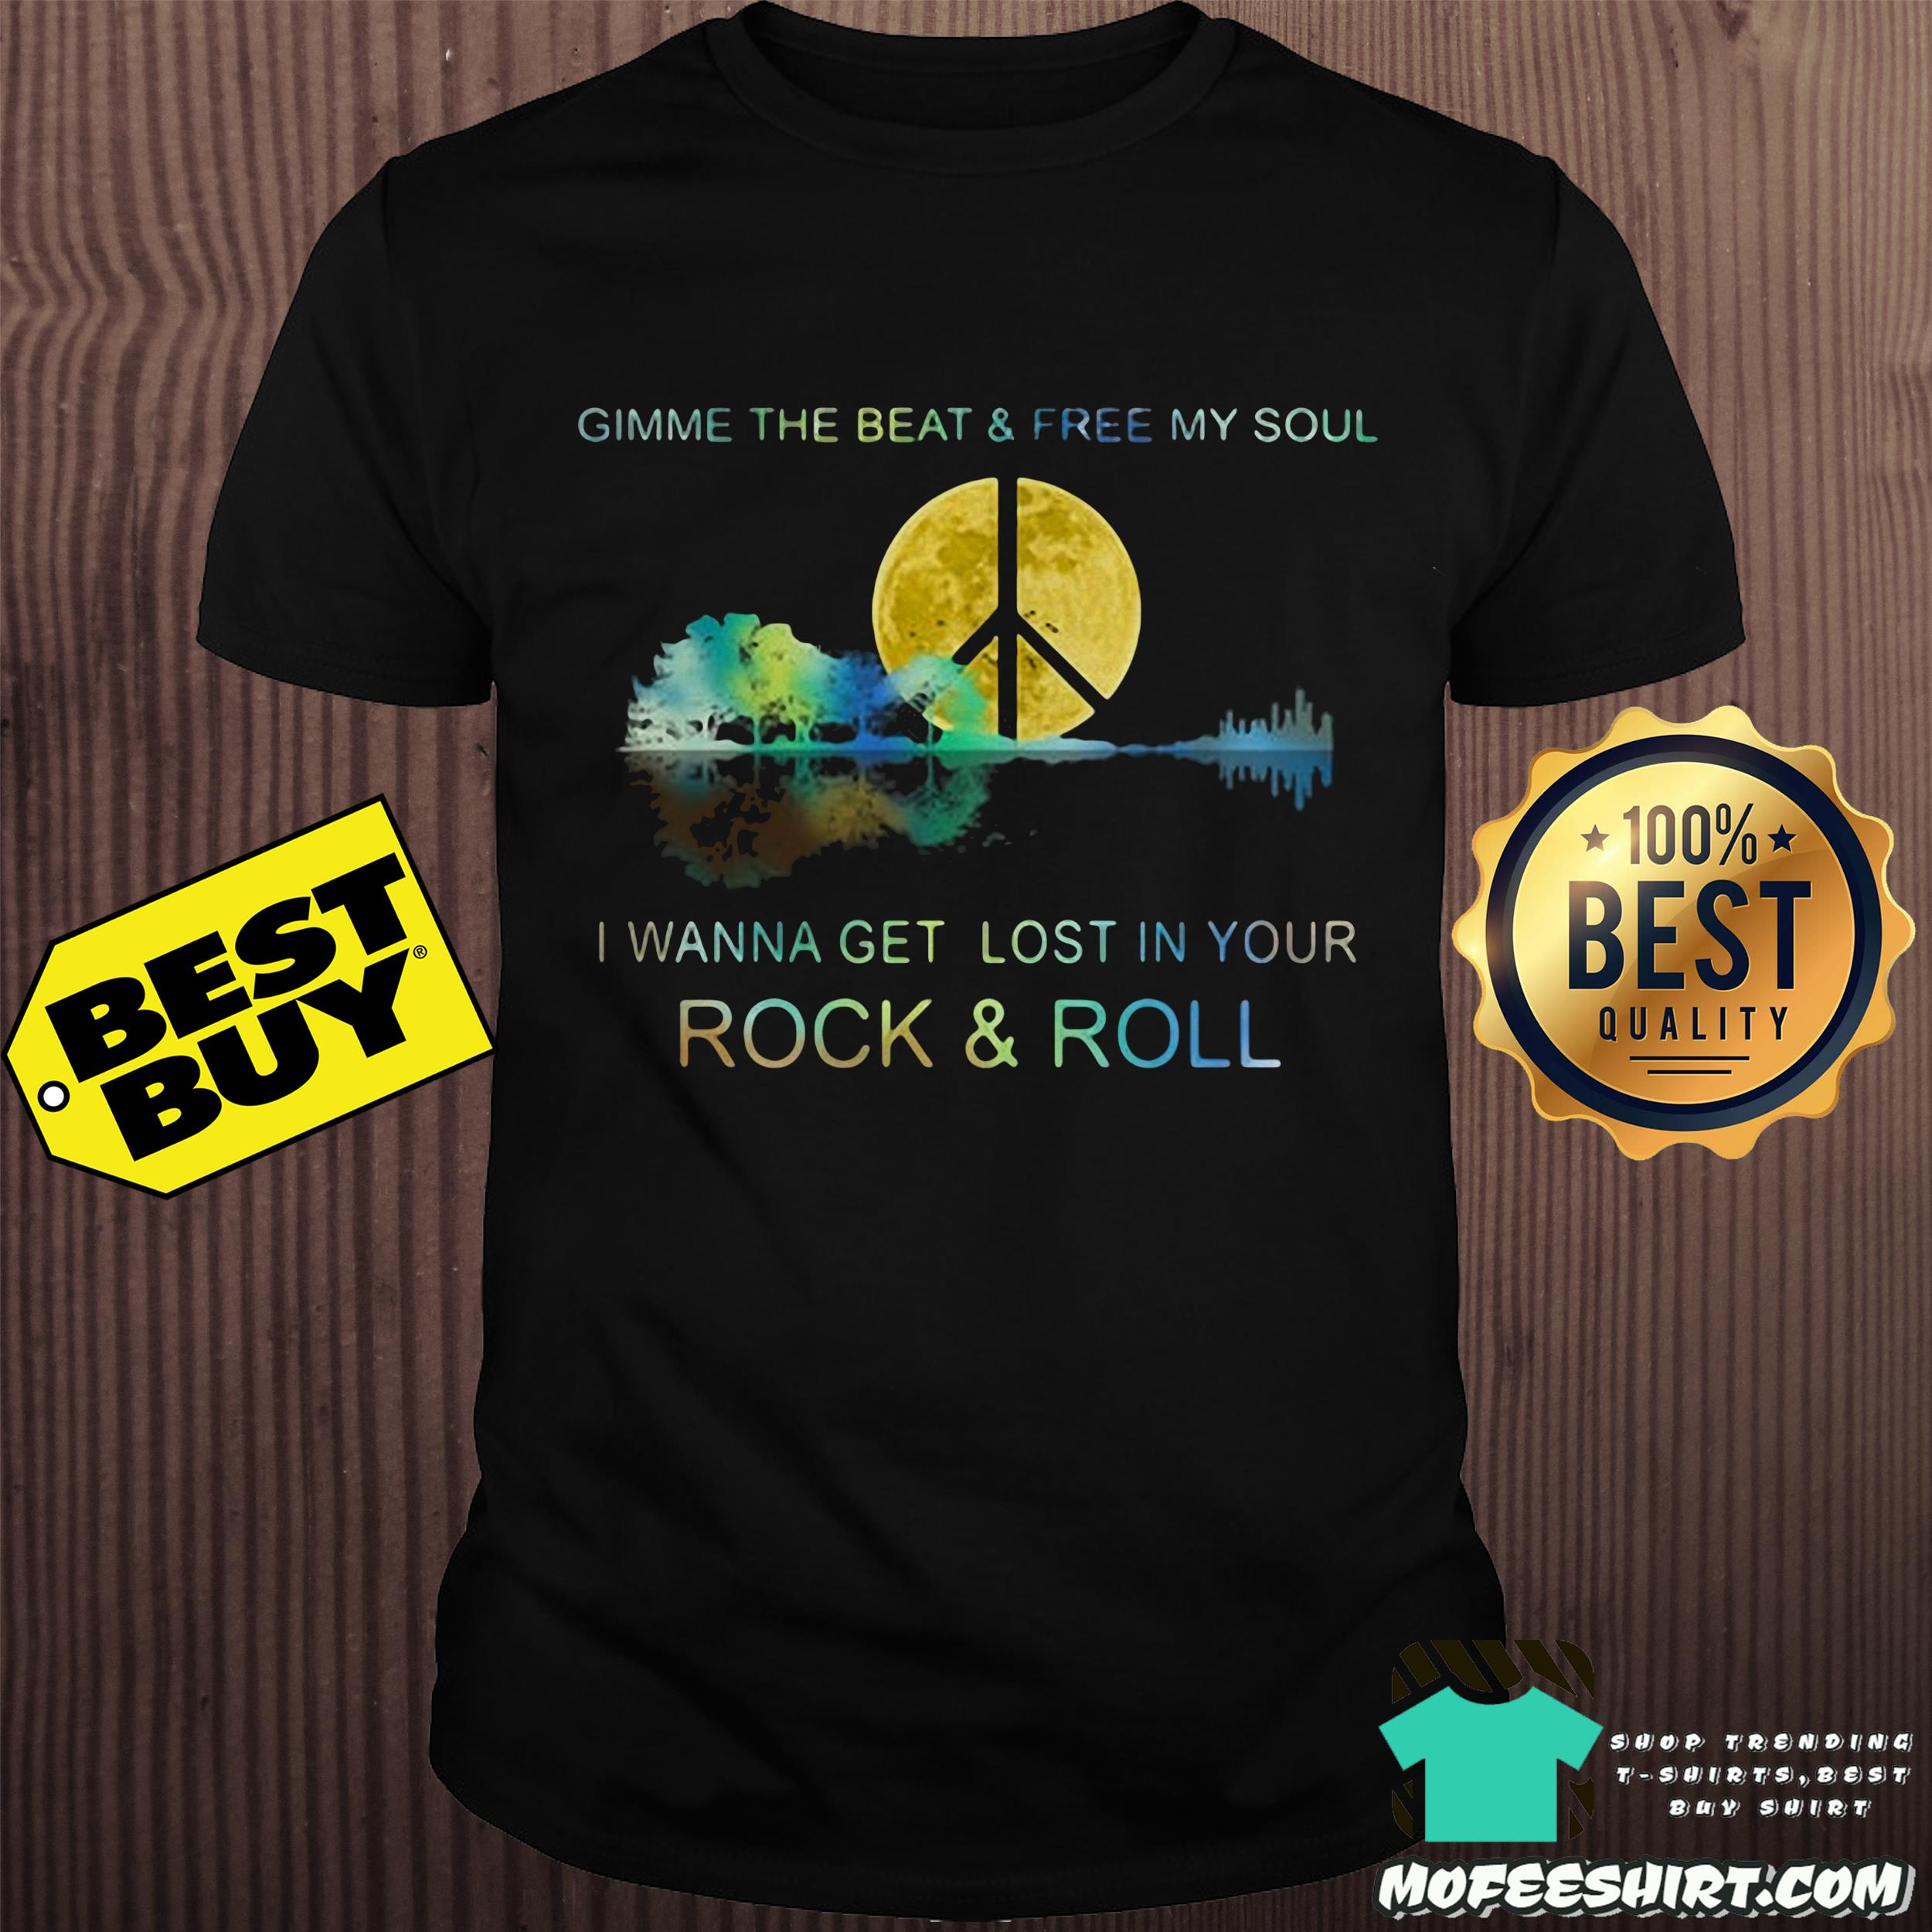 Sale 20 Official Gimme The Beat Free My Soul I Wanna Get Lost In Your Rock And Roll Shirt